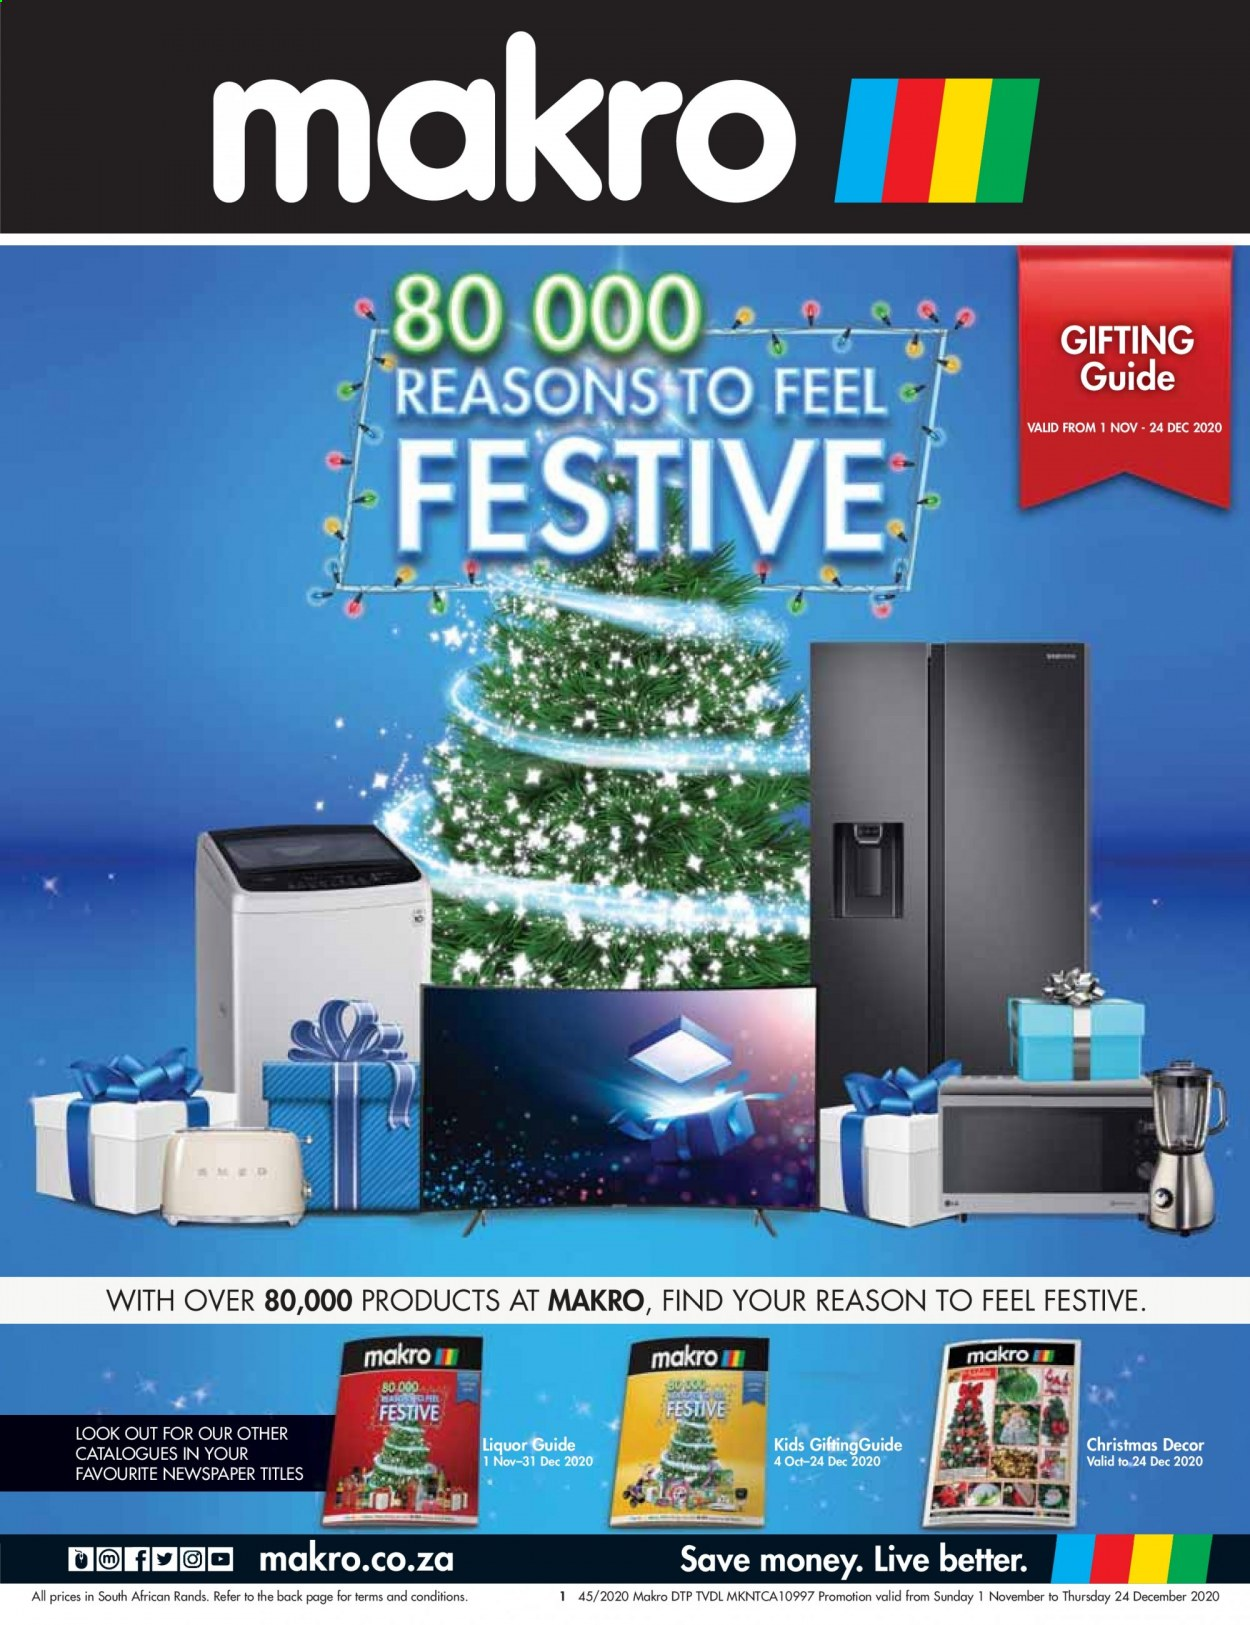 Makro catalogue  - 11.01.2020 - 12.24.2020 - Sales products - liquor, christmas decor. Page 1.